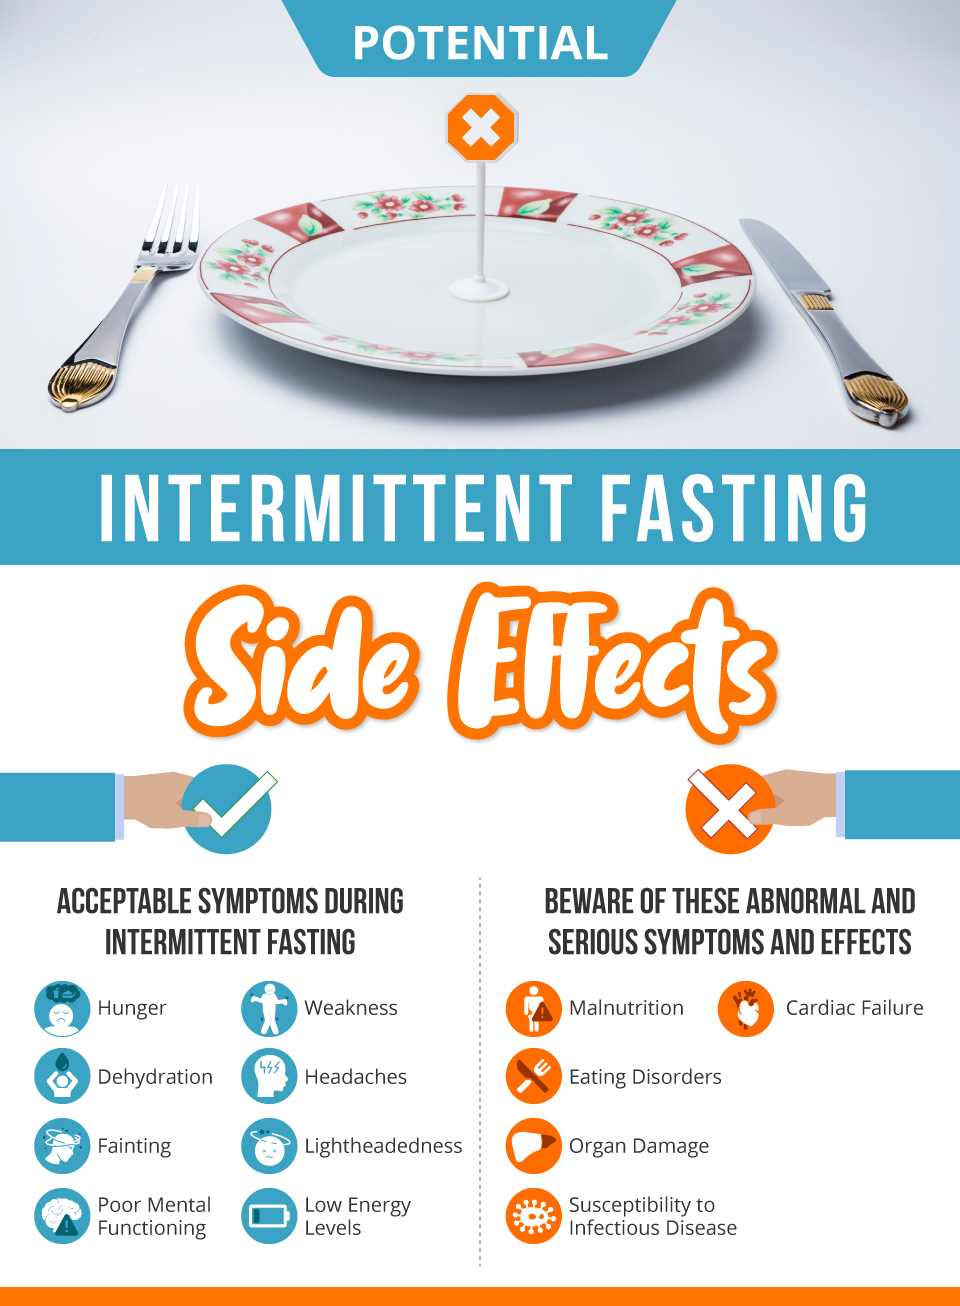 Potential Intermittent Fasting Side Effects